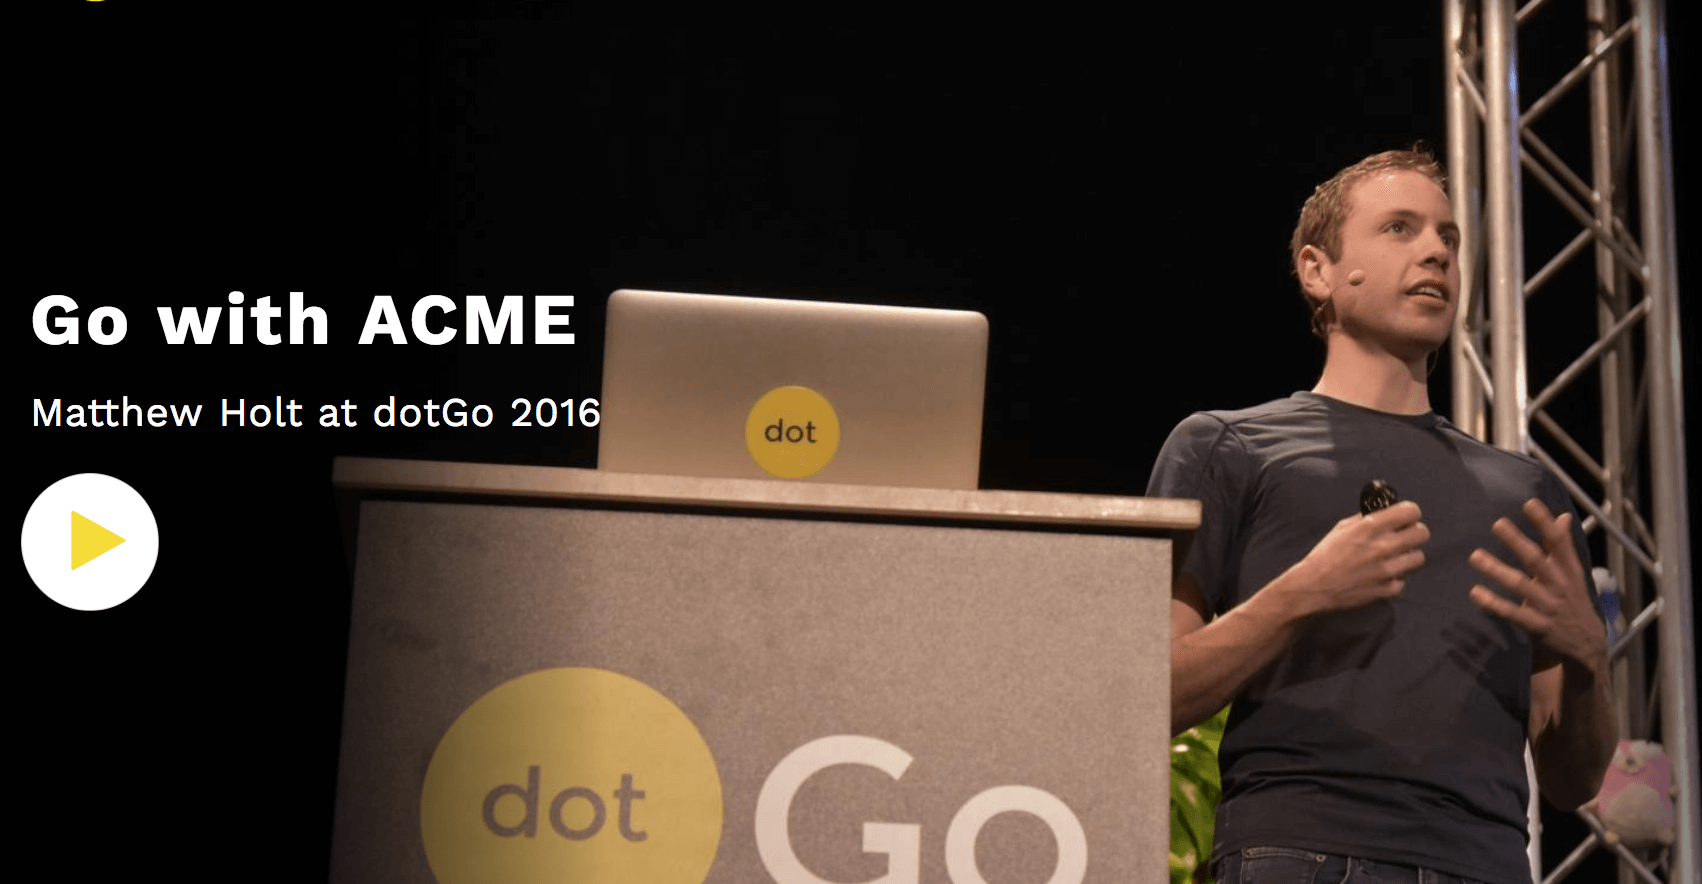 Matthew Holt speaking at dotGo 2016 about ACME in Go